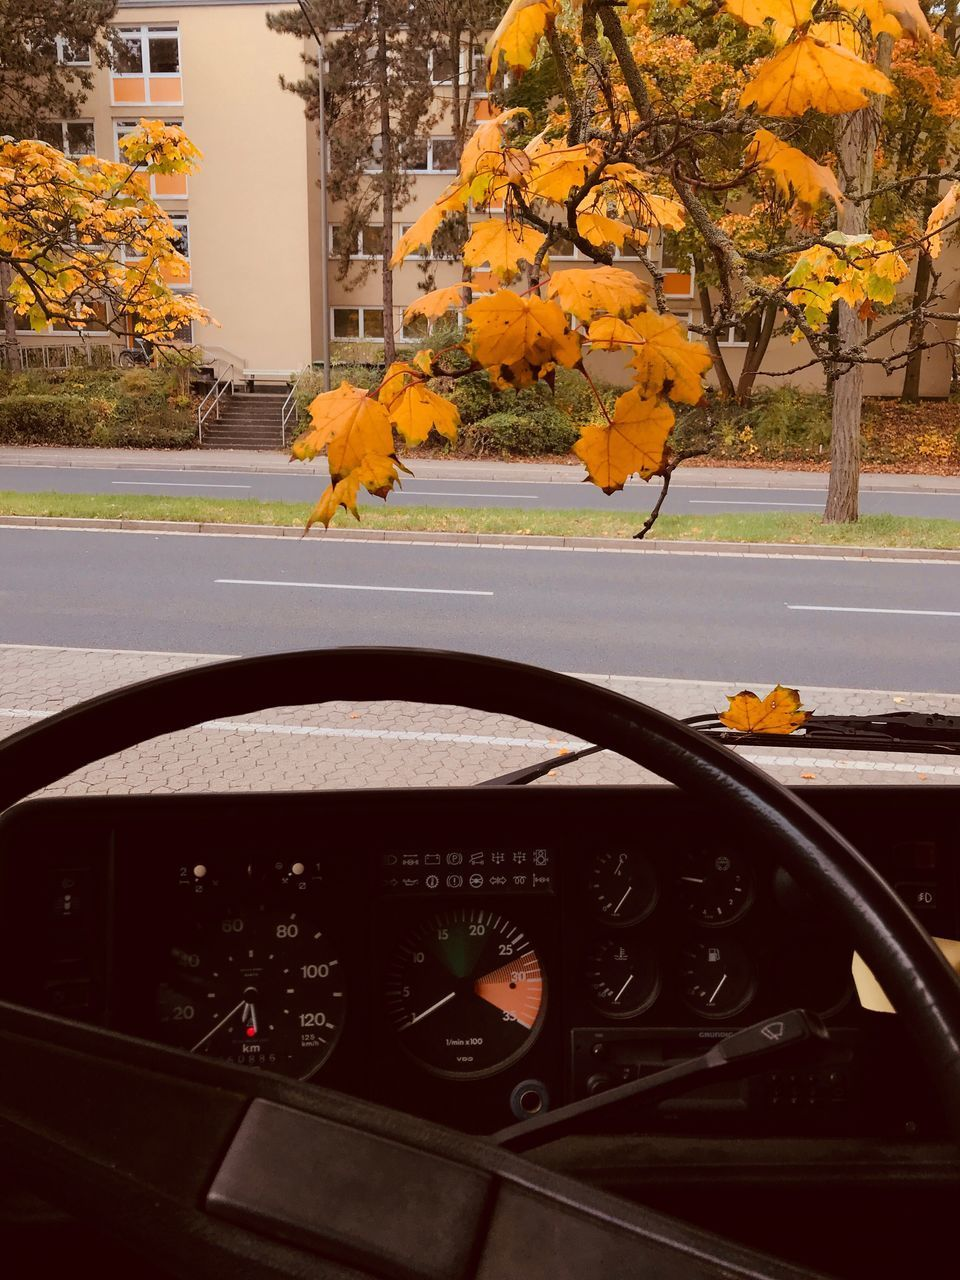 autumn, tree, car, leaf, transportation, orange color, land vehicle, flower, nature, change, day, no people, plant, growth, outdoors, beauty in nature, road, built structure, yellow, architecture, mammal, animal themes, fragility, close-up